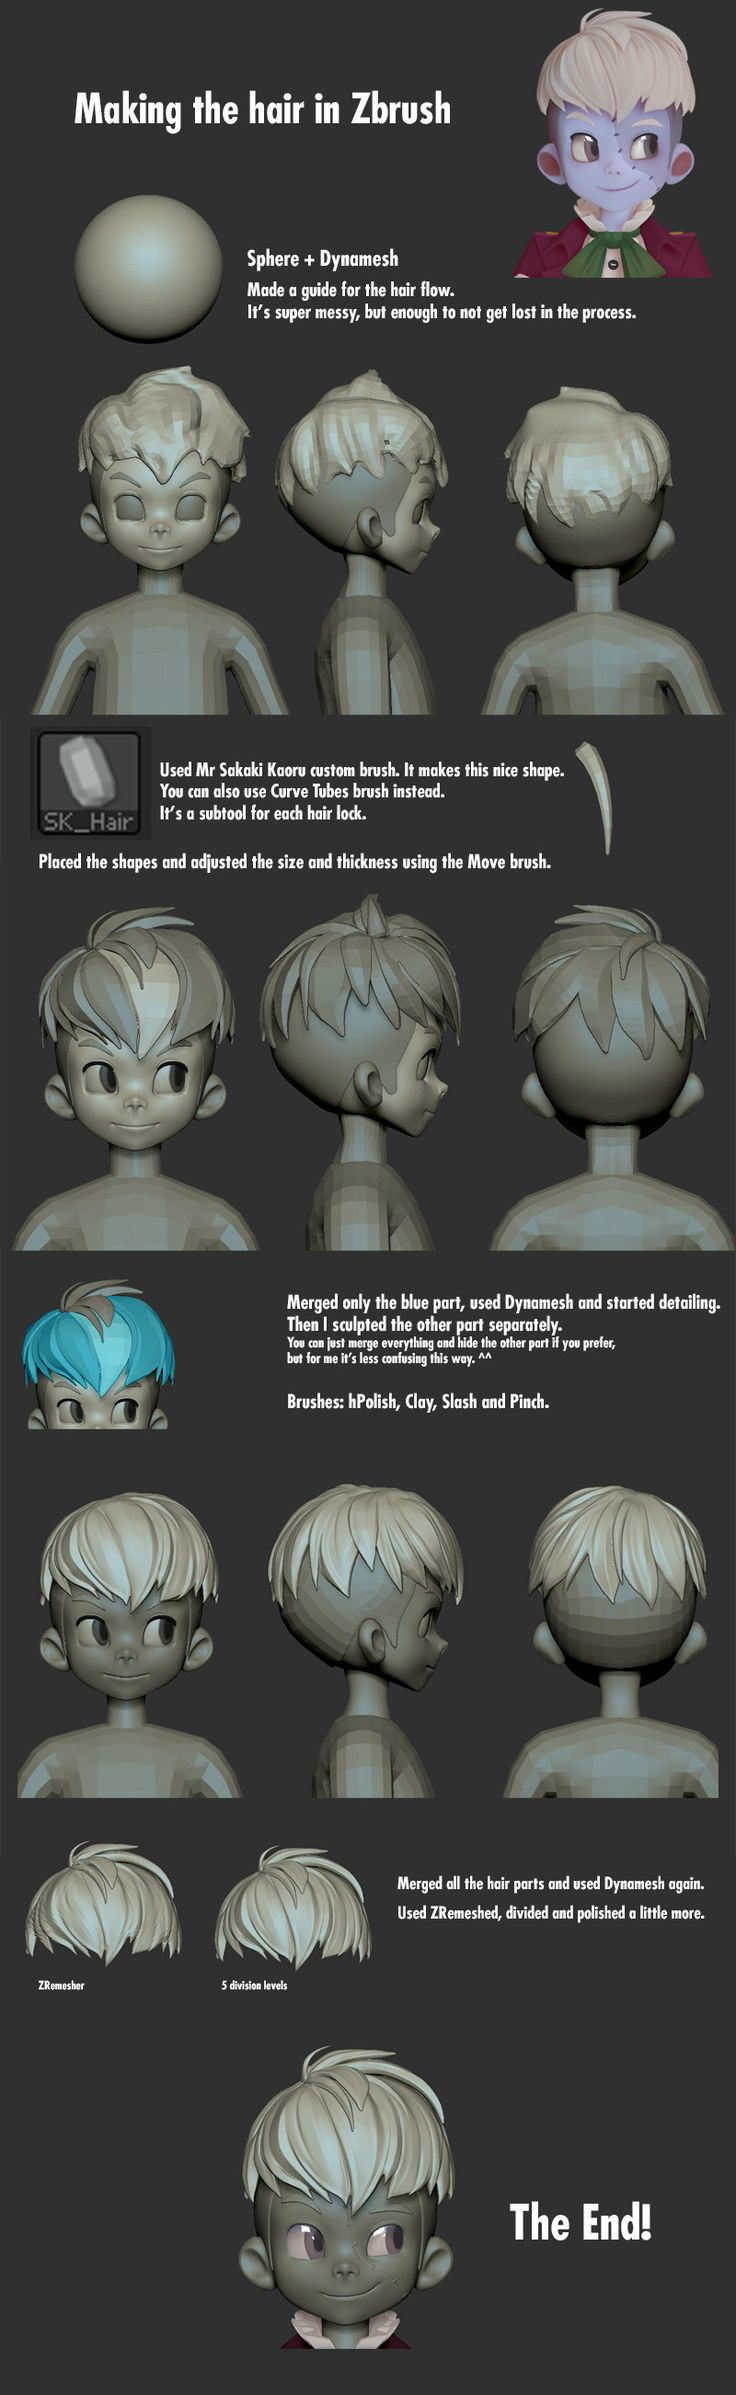 Sculp based on Hong SoonSang adorable character Qura~! You can see his work here: www.artstation.com/artist/soonsanghong54